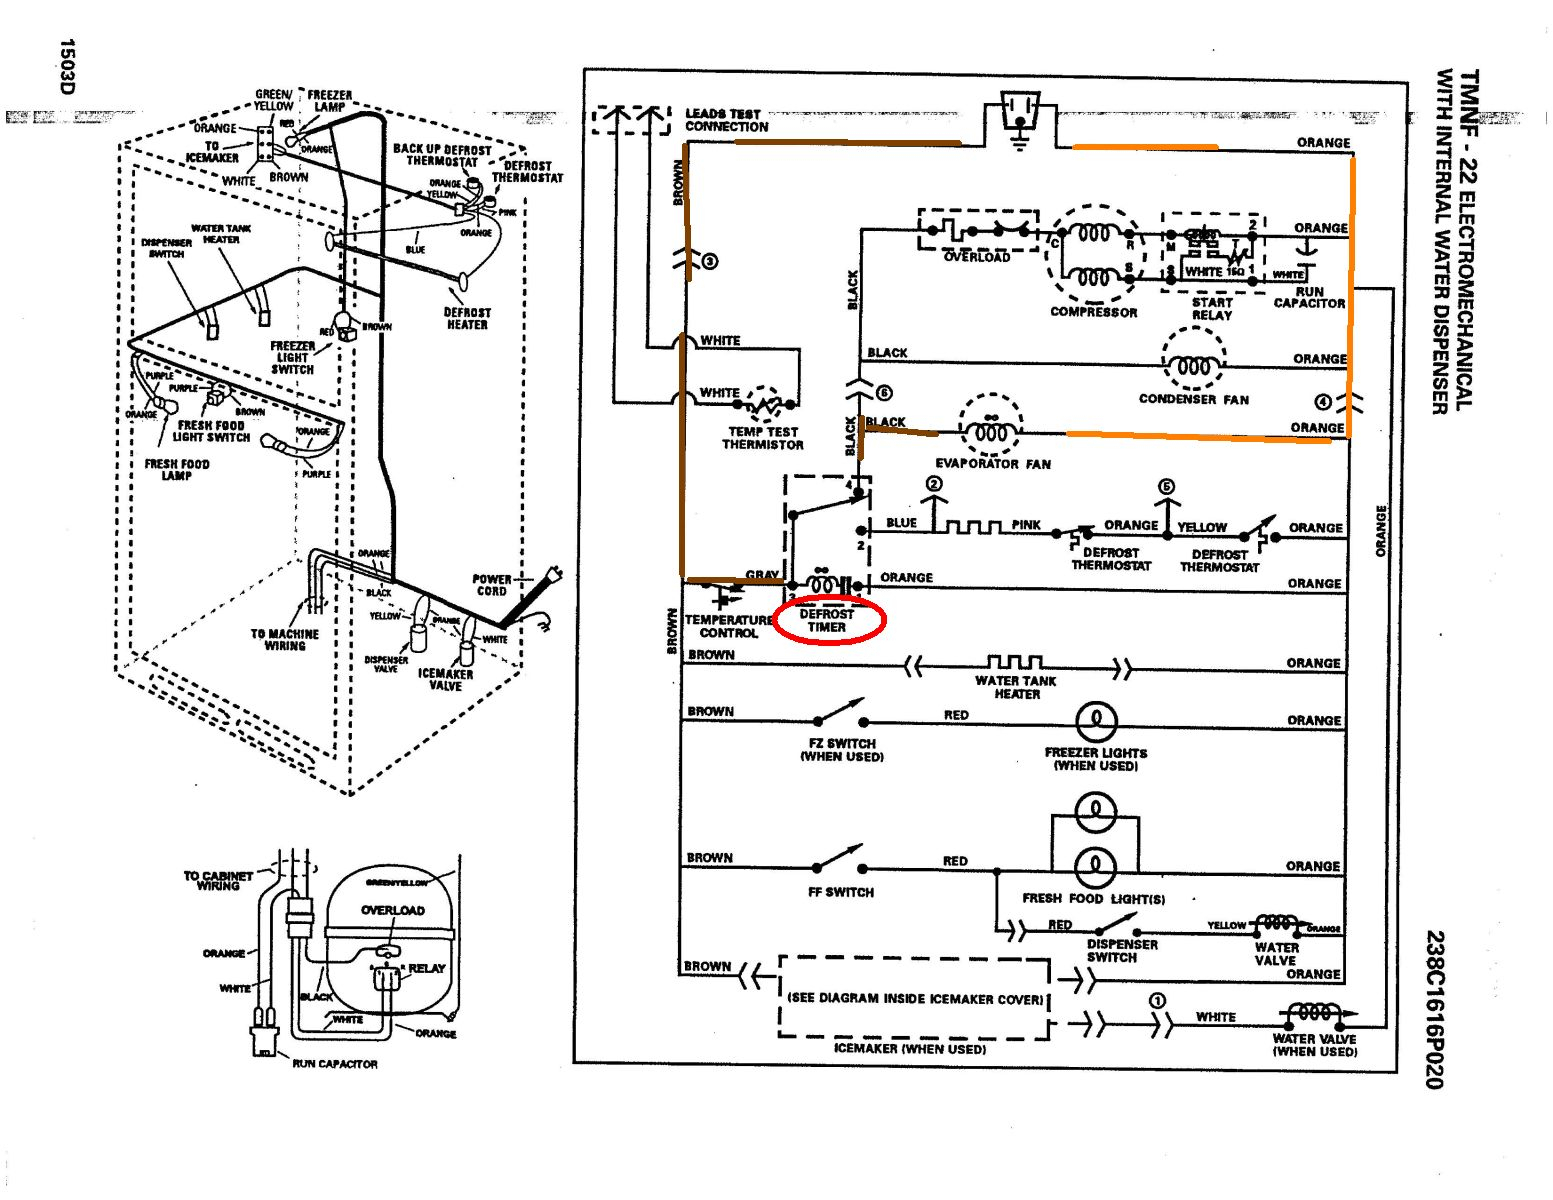 Whirlpool Fridge Wiring Diagram Download